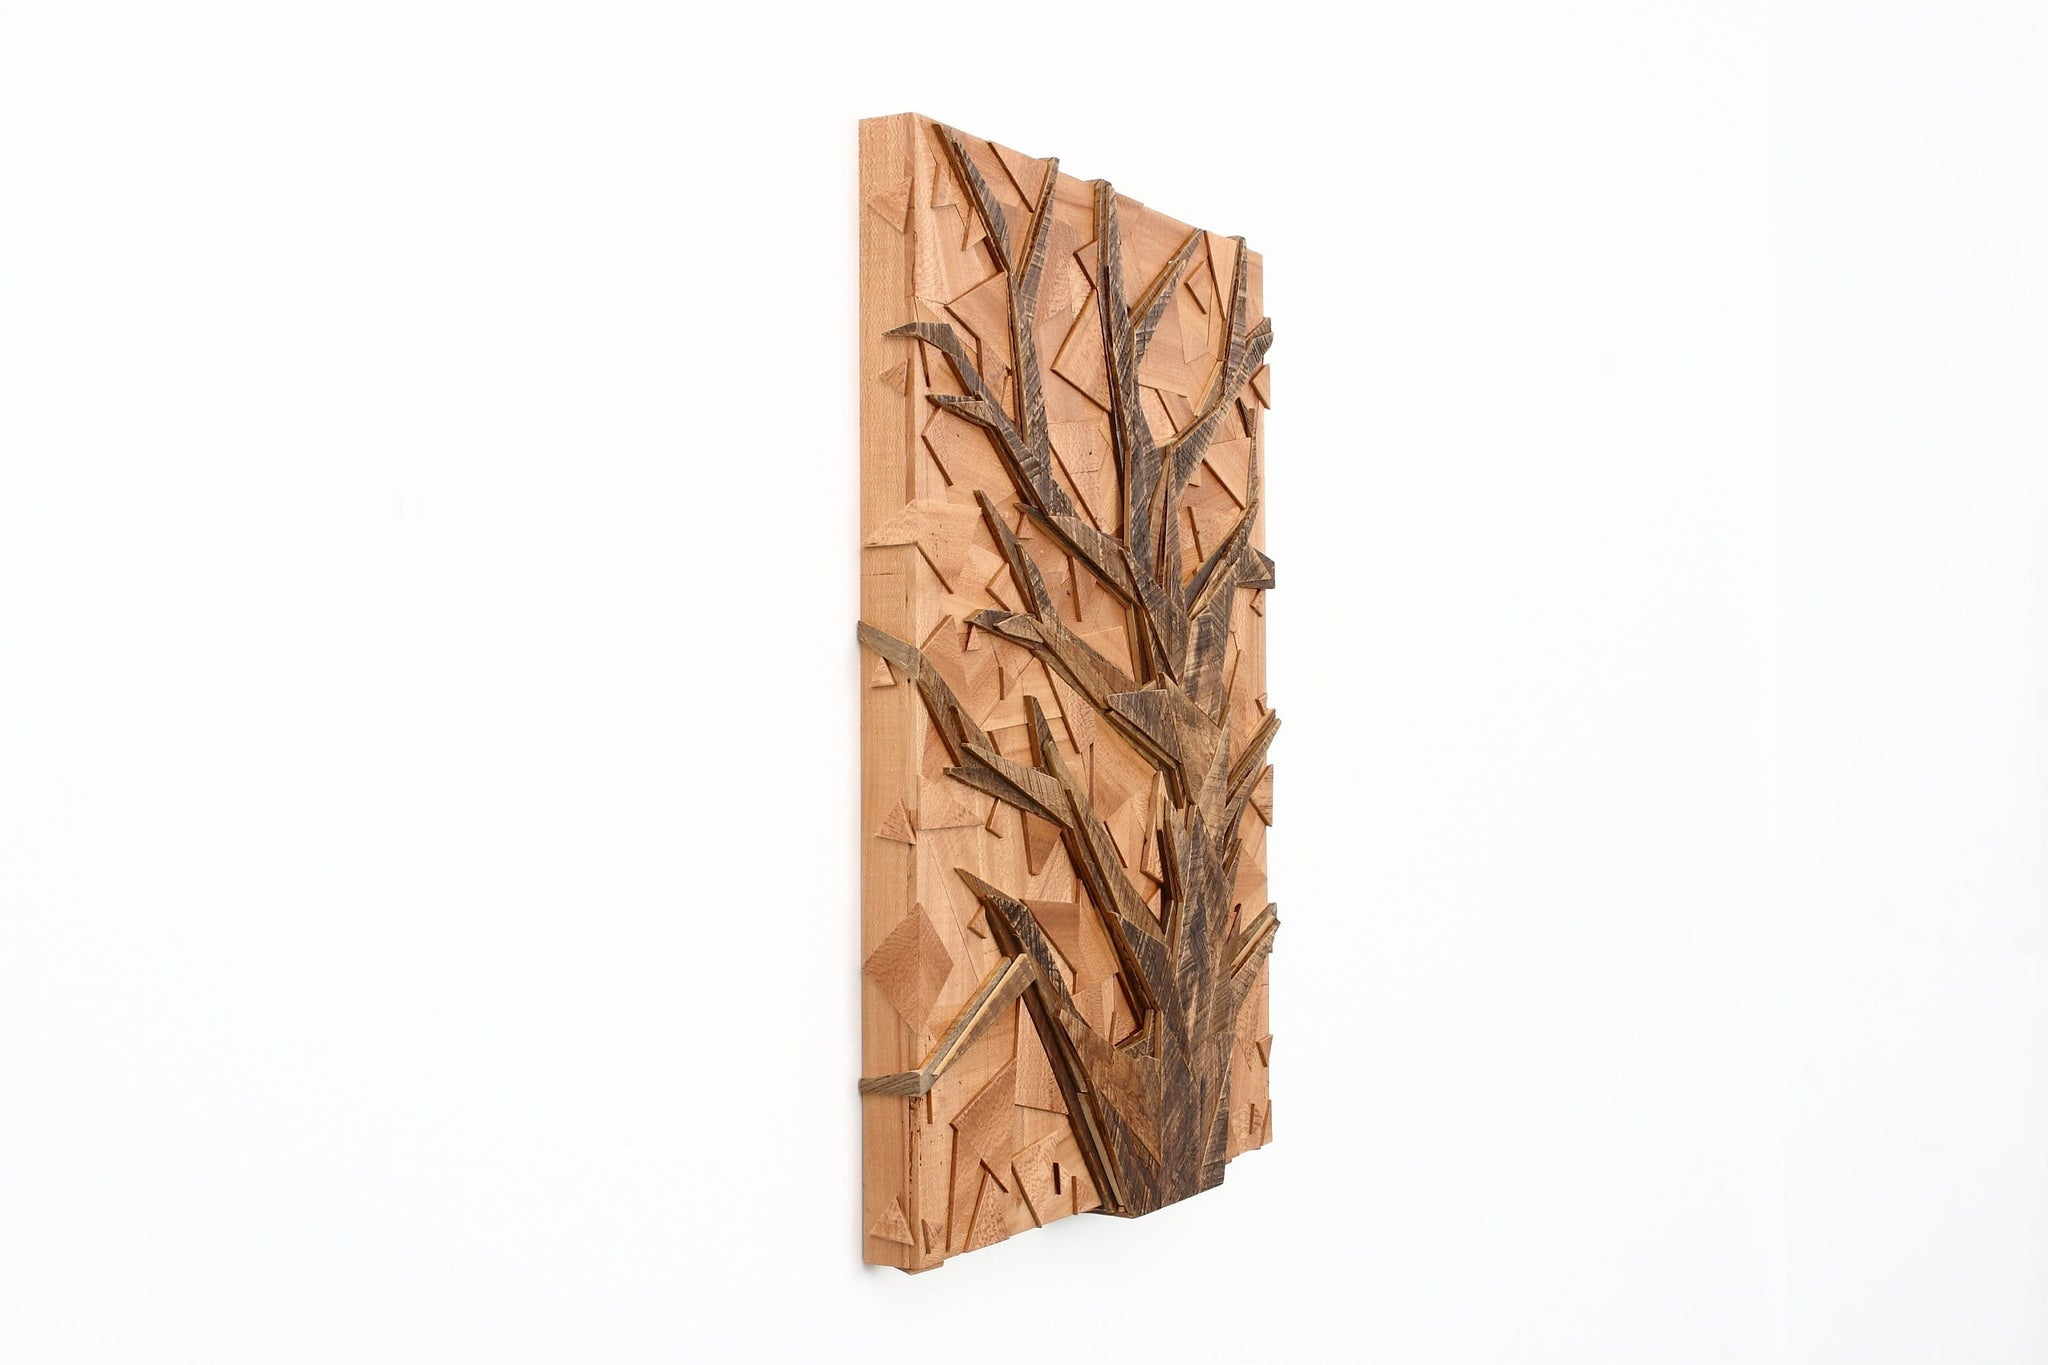 Geometric wood tree art